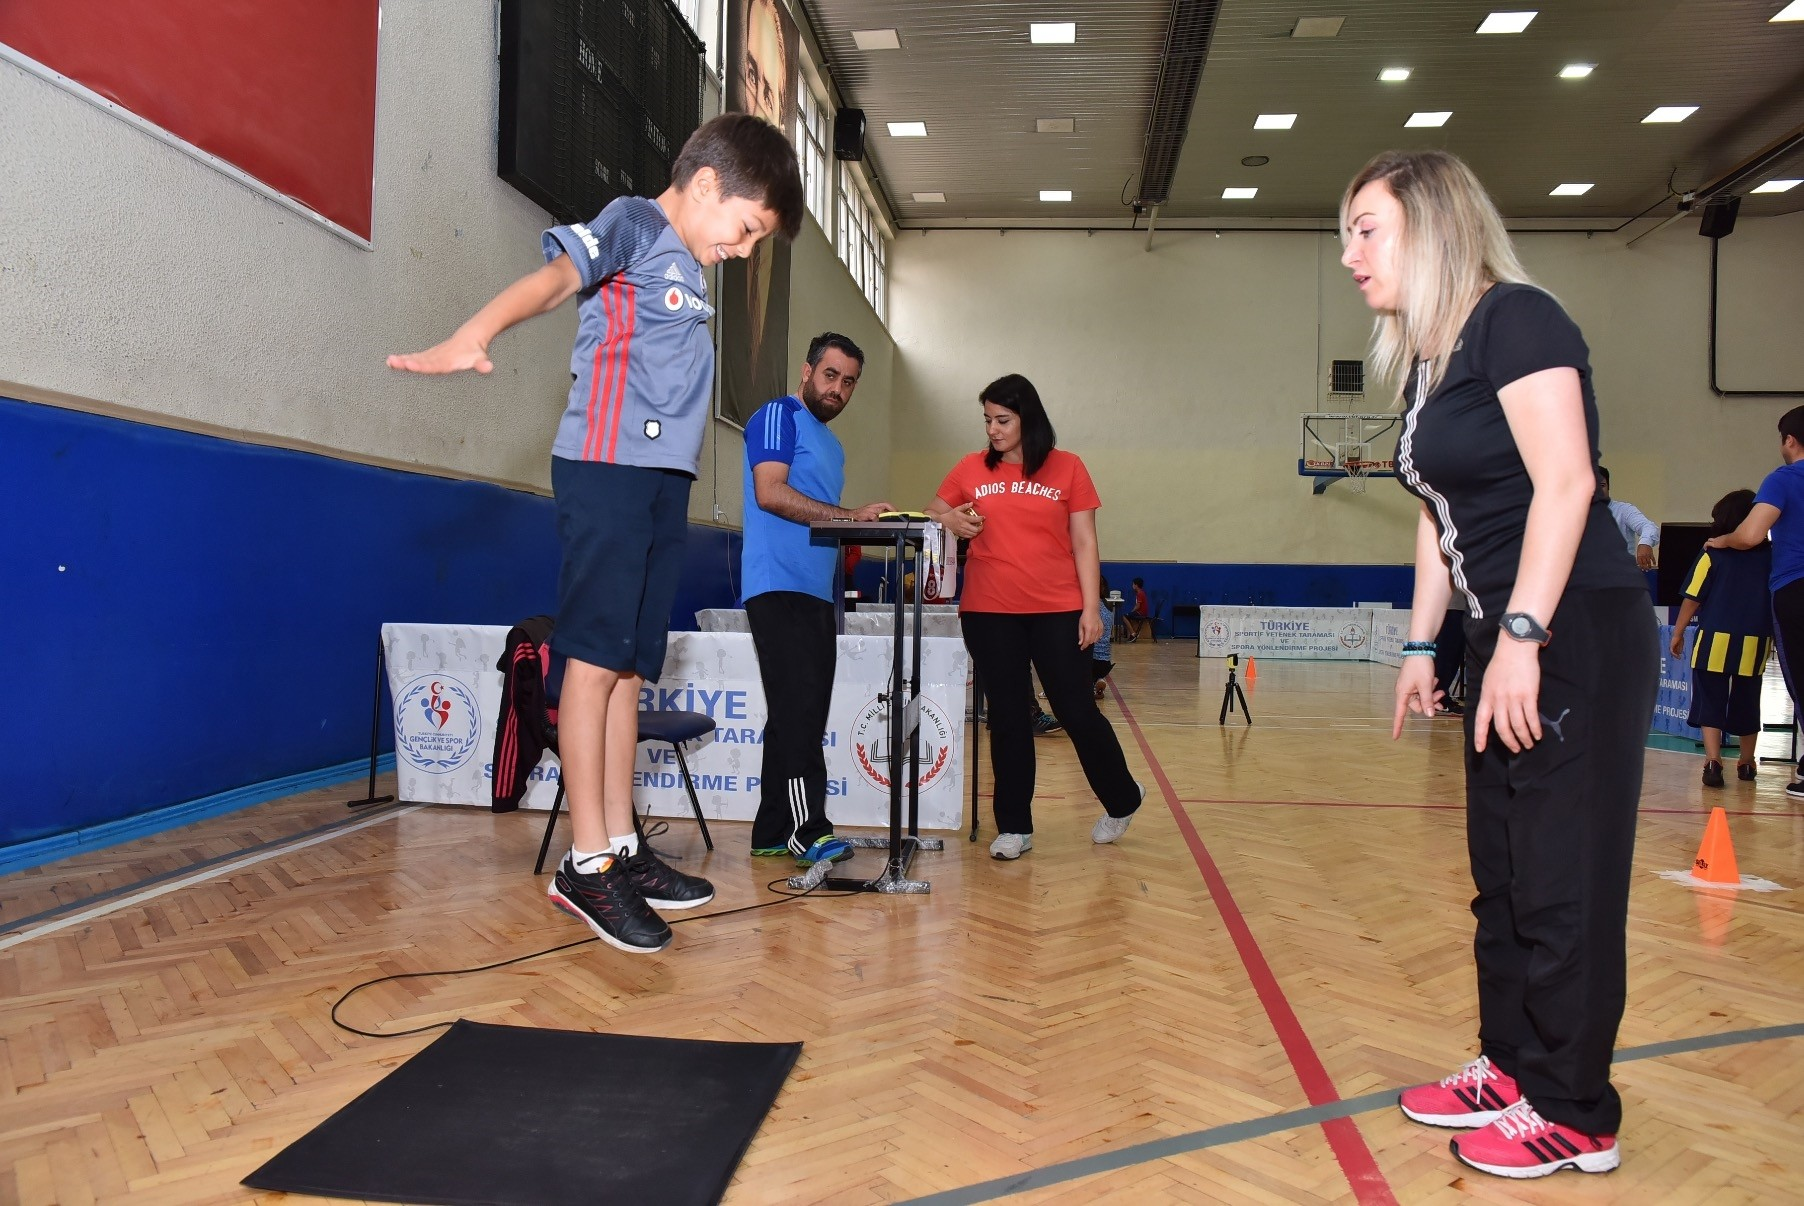 Scouts check the skills of young students across Turkey for their sports talent.